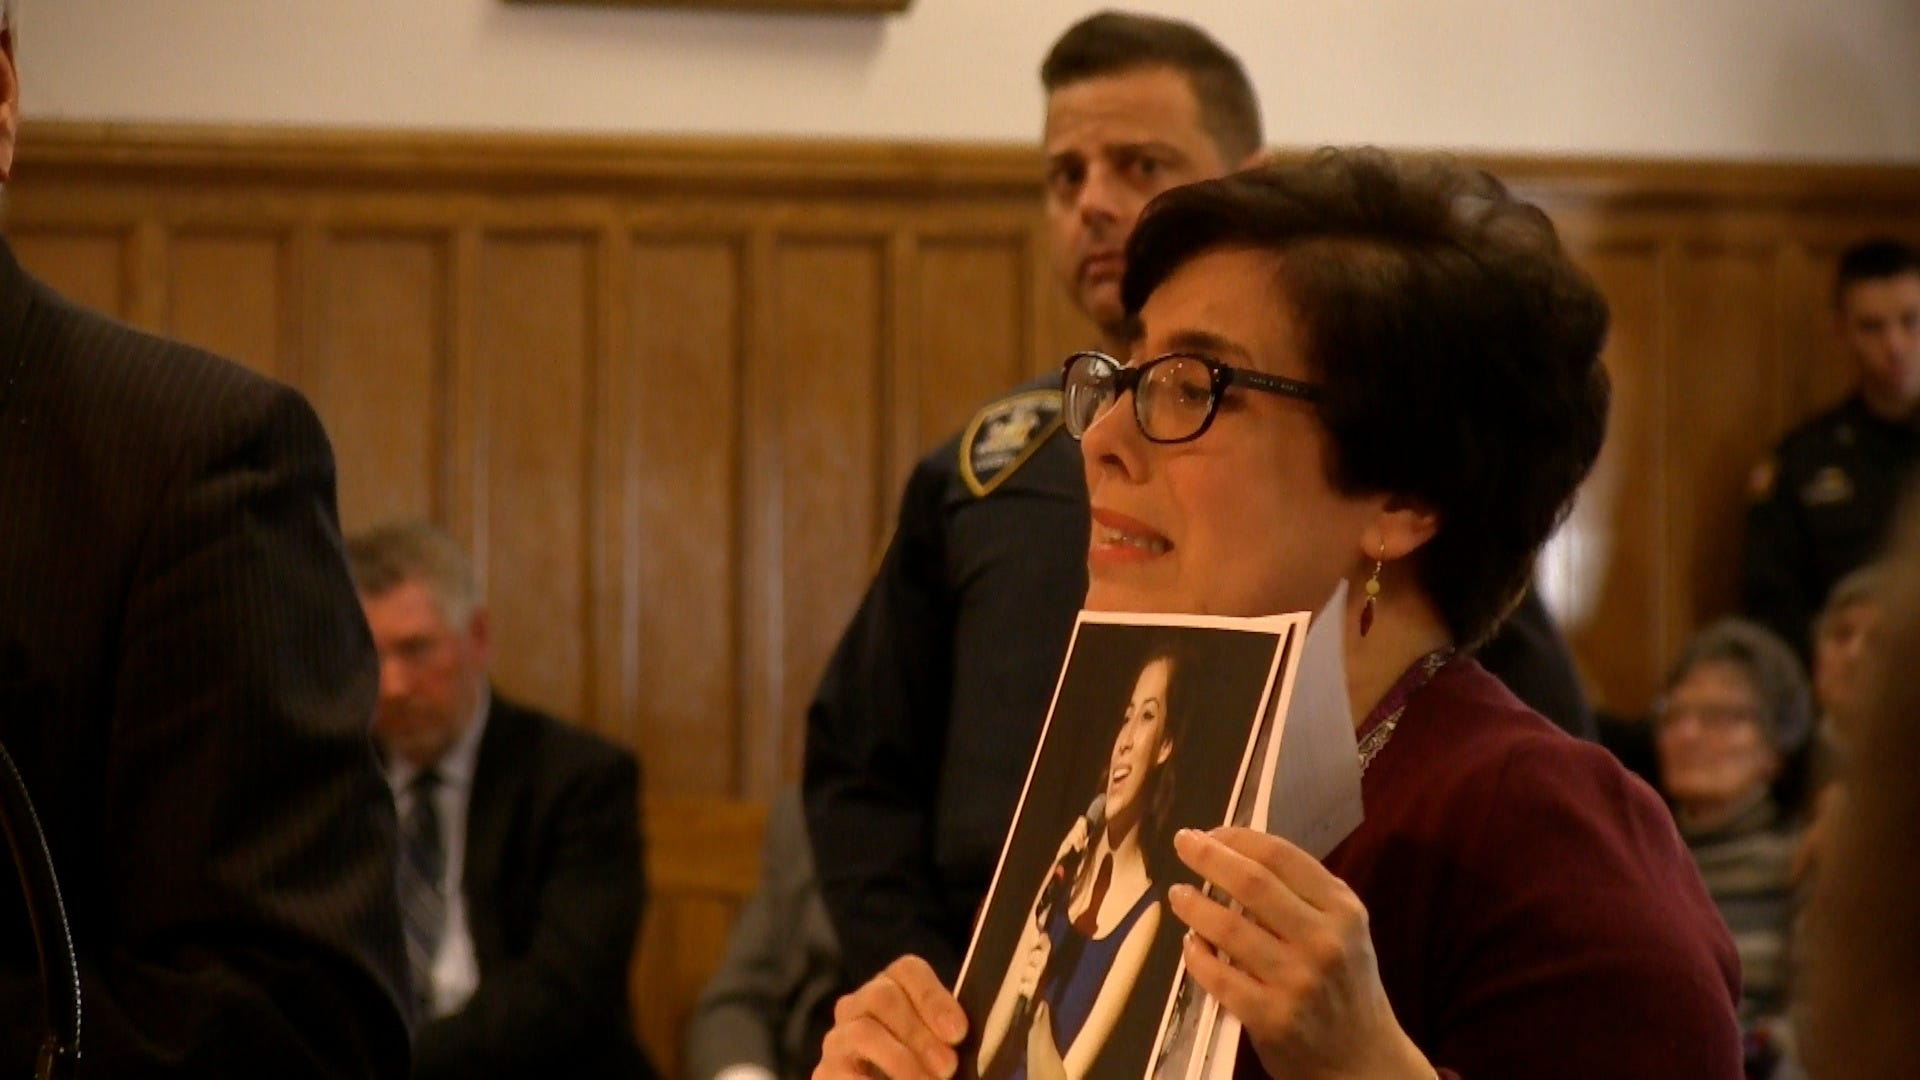 Boeck sentenced 7 to 21 years for drunk driving deaths